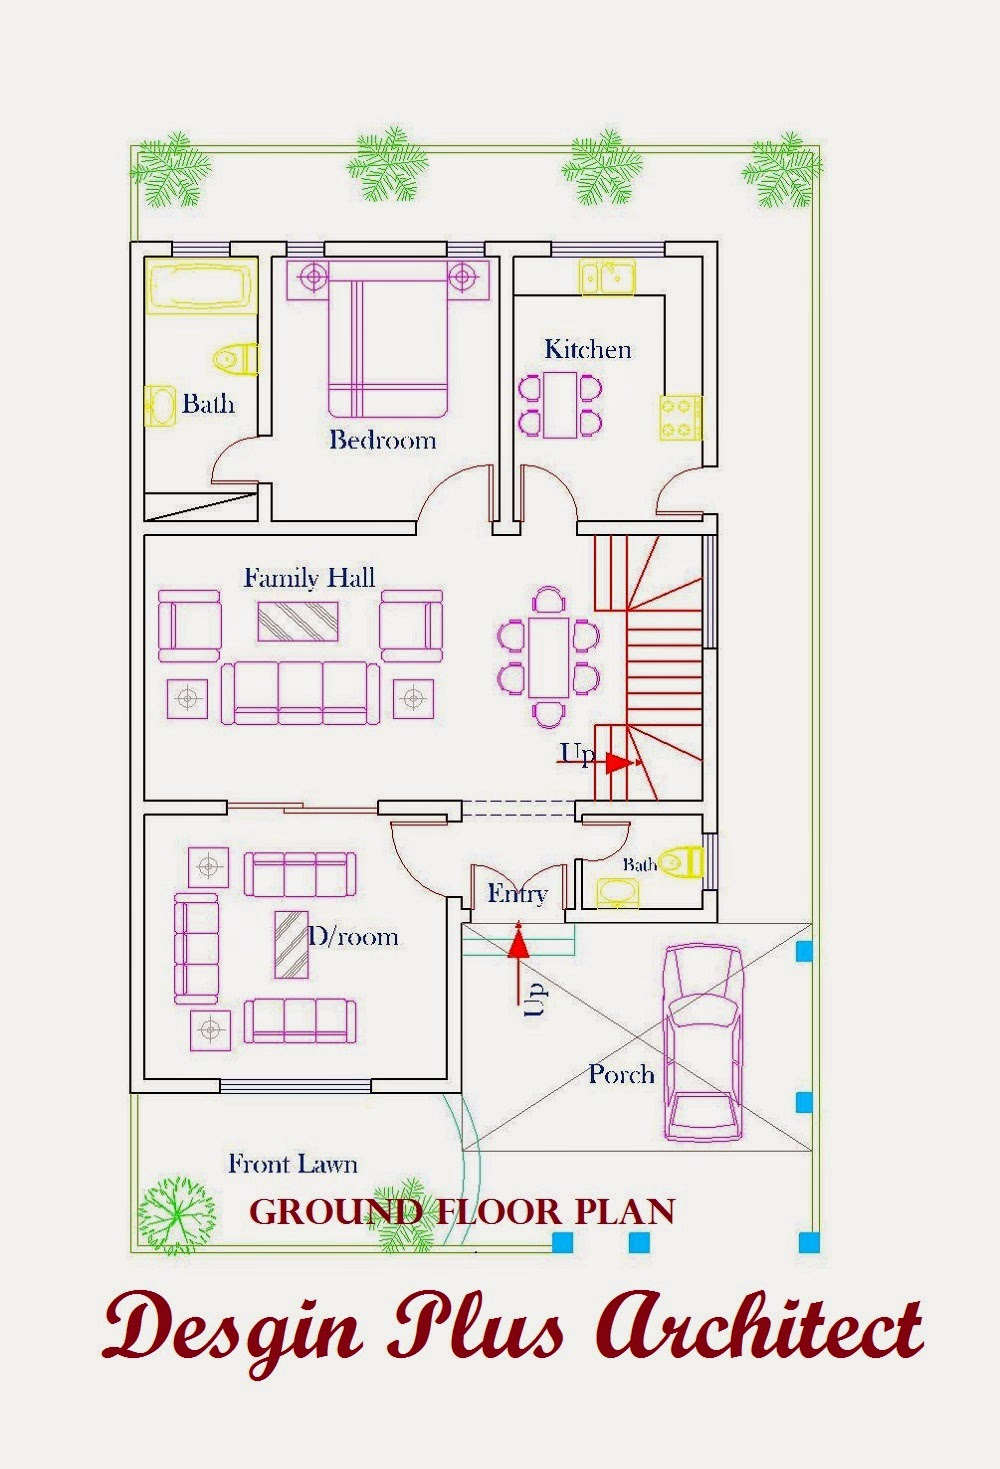 Home plans in pakistan home decor architect designer Arch design indian home plans